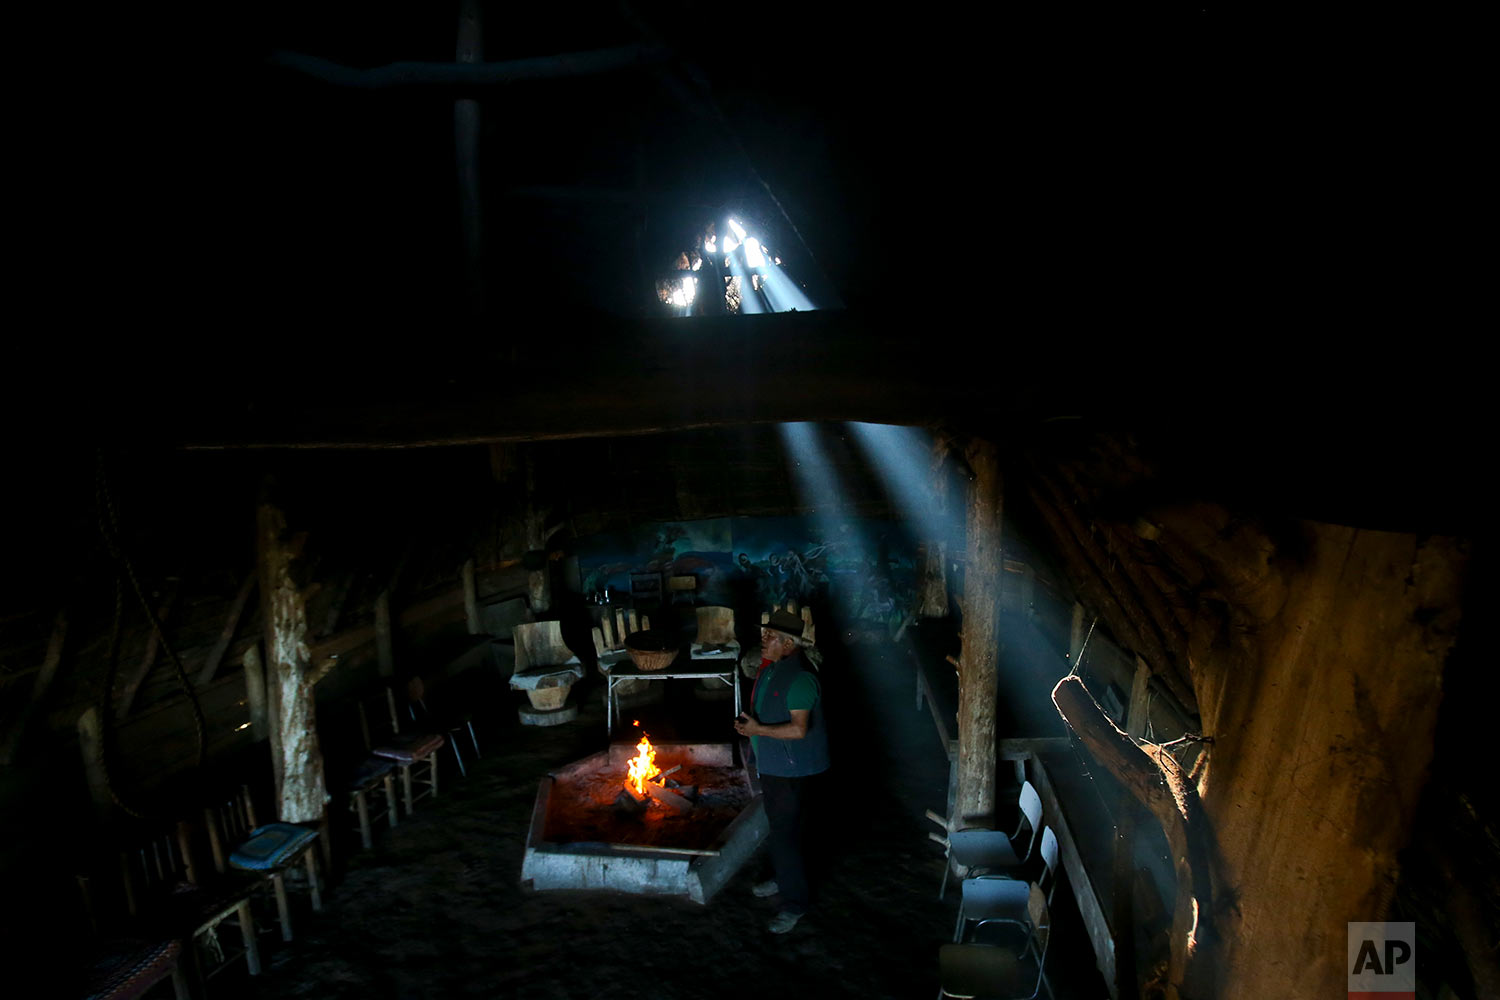 In this Sunday, Jan. 7, 2018 photo, Mauricio Painefil readies a traditional house known as a ruca for tourists, in the Mapuche community Llaguepulli, in Temuco, Chile. The Mapuche are successfully introducing ethno-turismo, sharing their ancestral traditions and culture. (AP Photo/Esteban Felix) | See these photos on AP Images